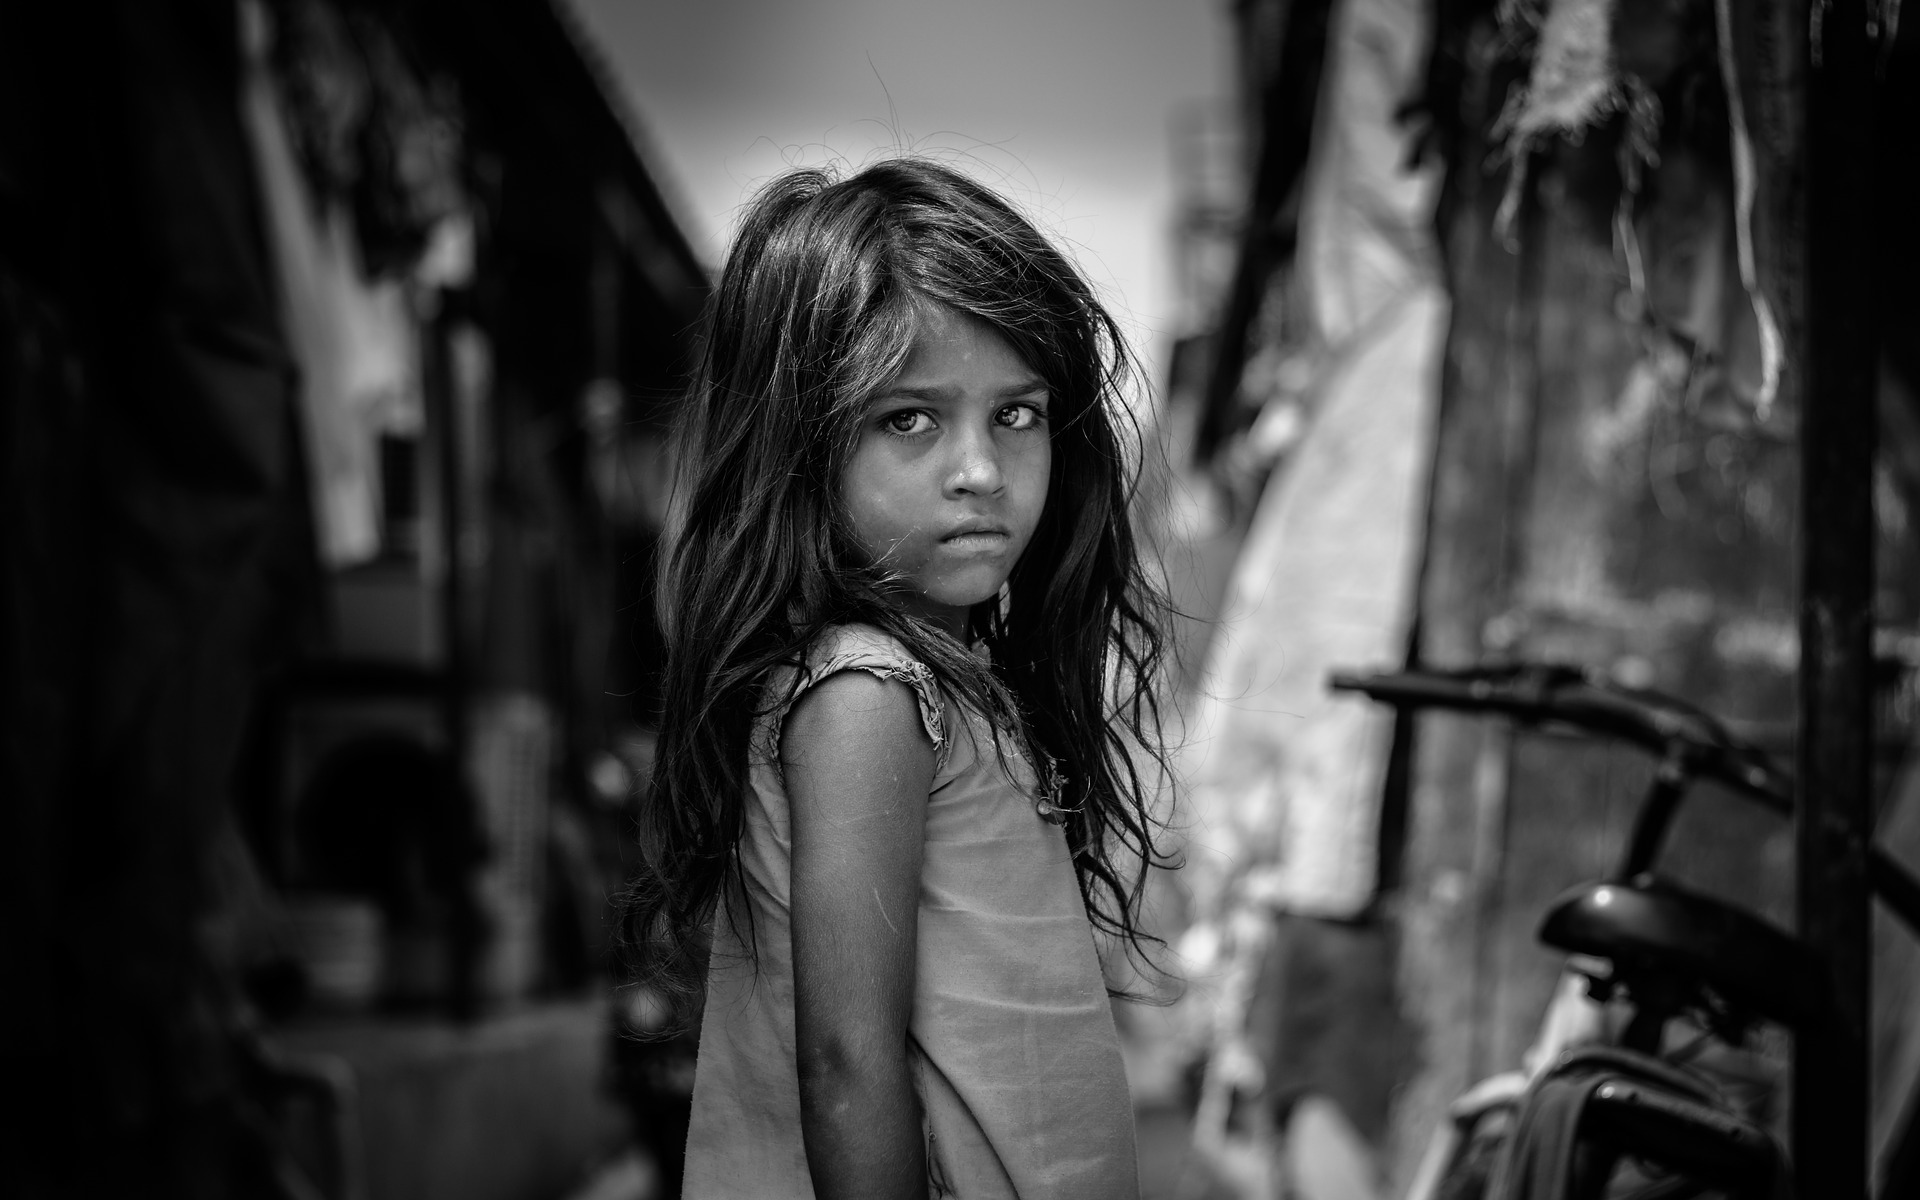 Child Trafficking: The Scope, Understanding, and Prevention